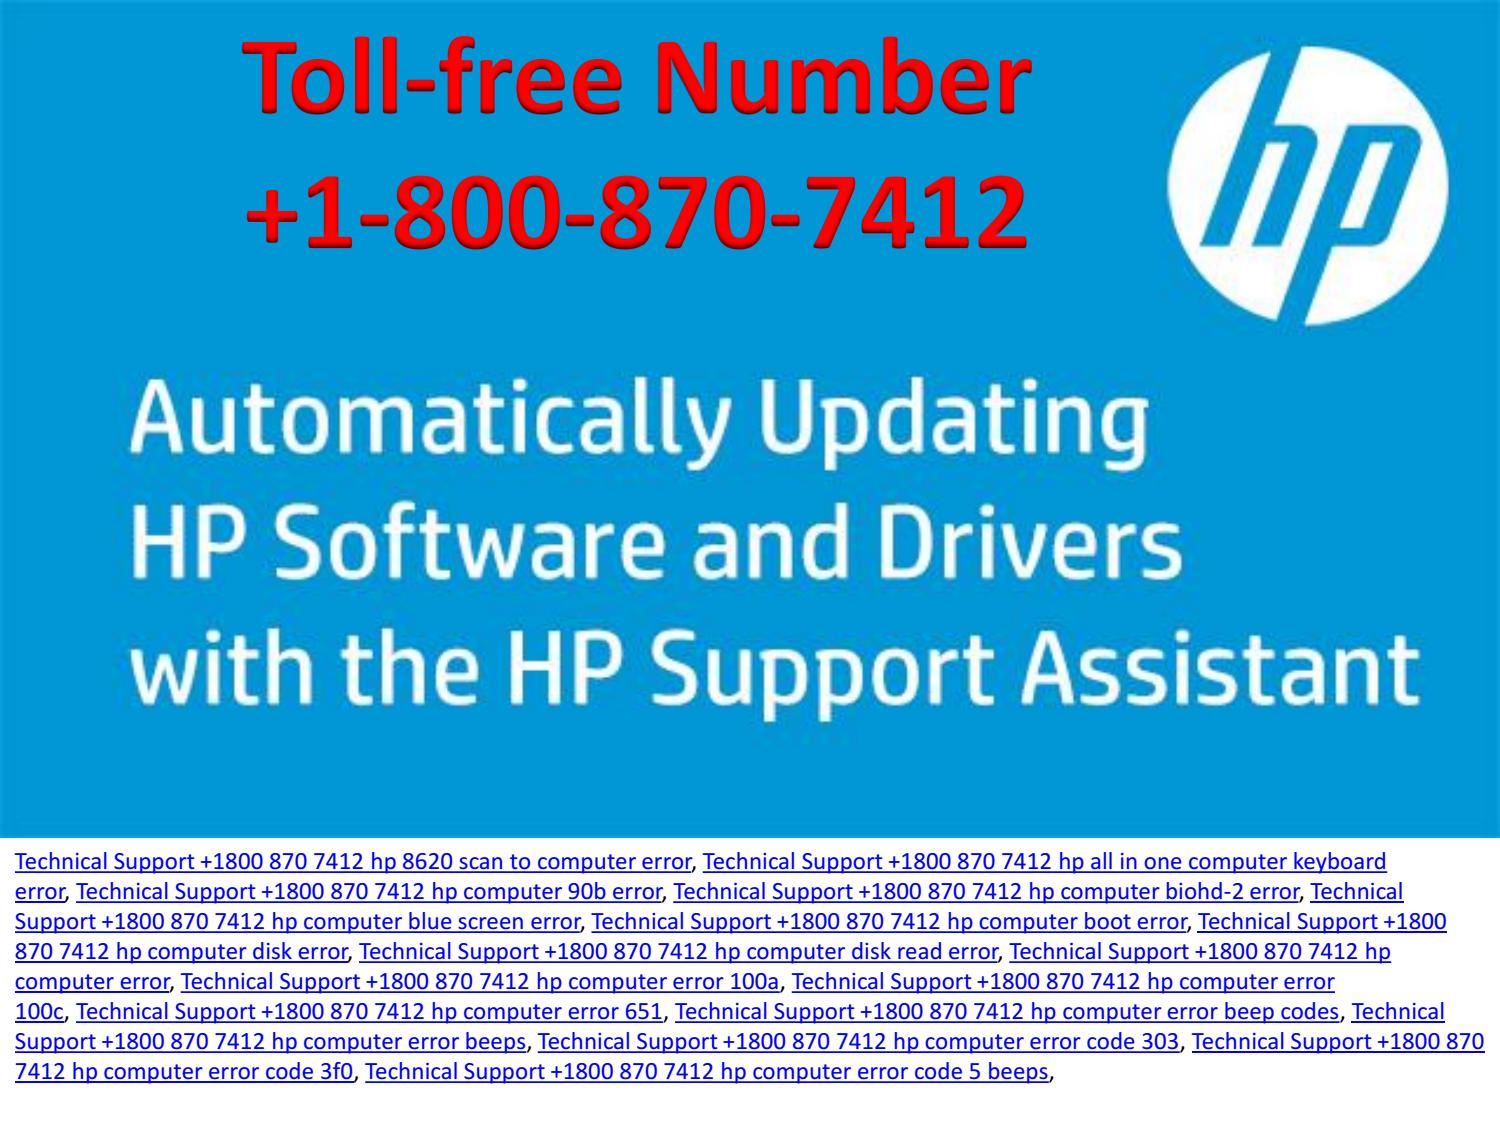 24 seven hp printer customer support phone number ( 1800 870